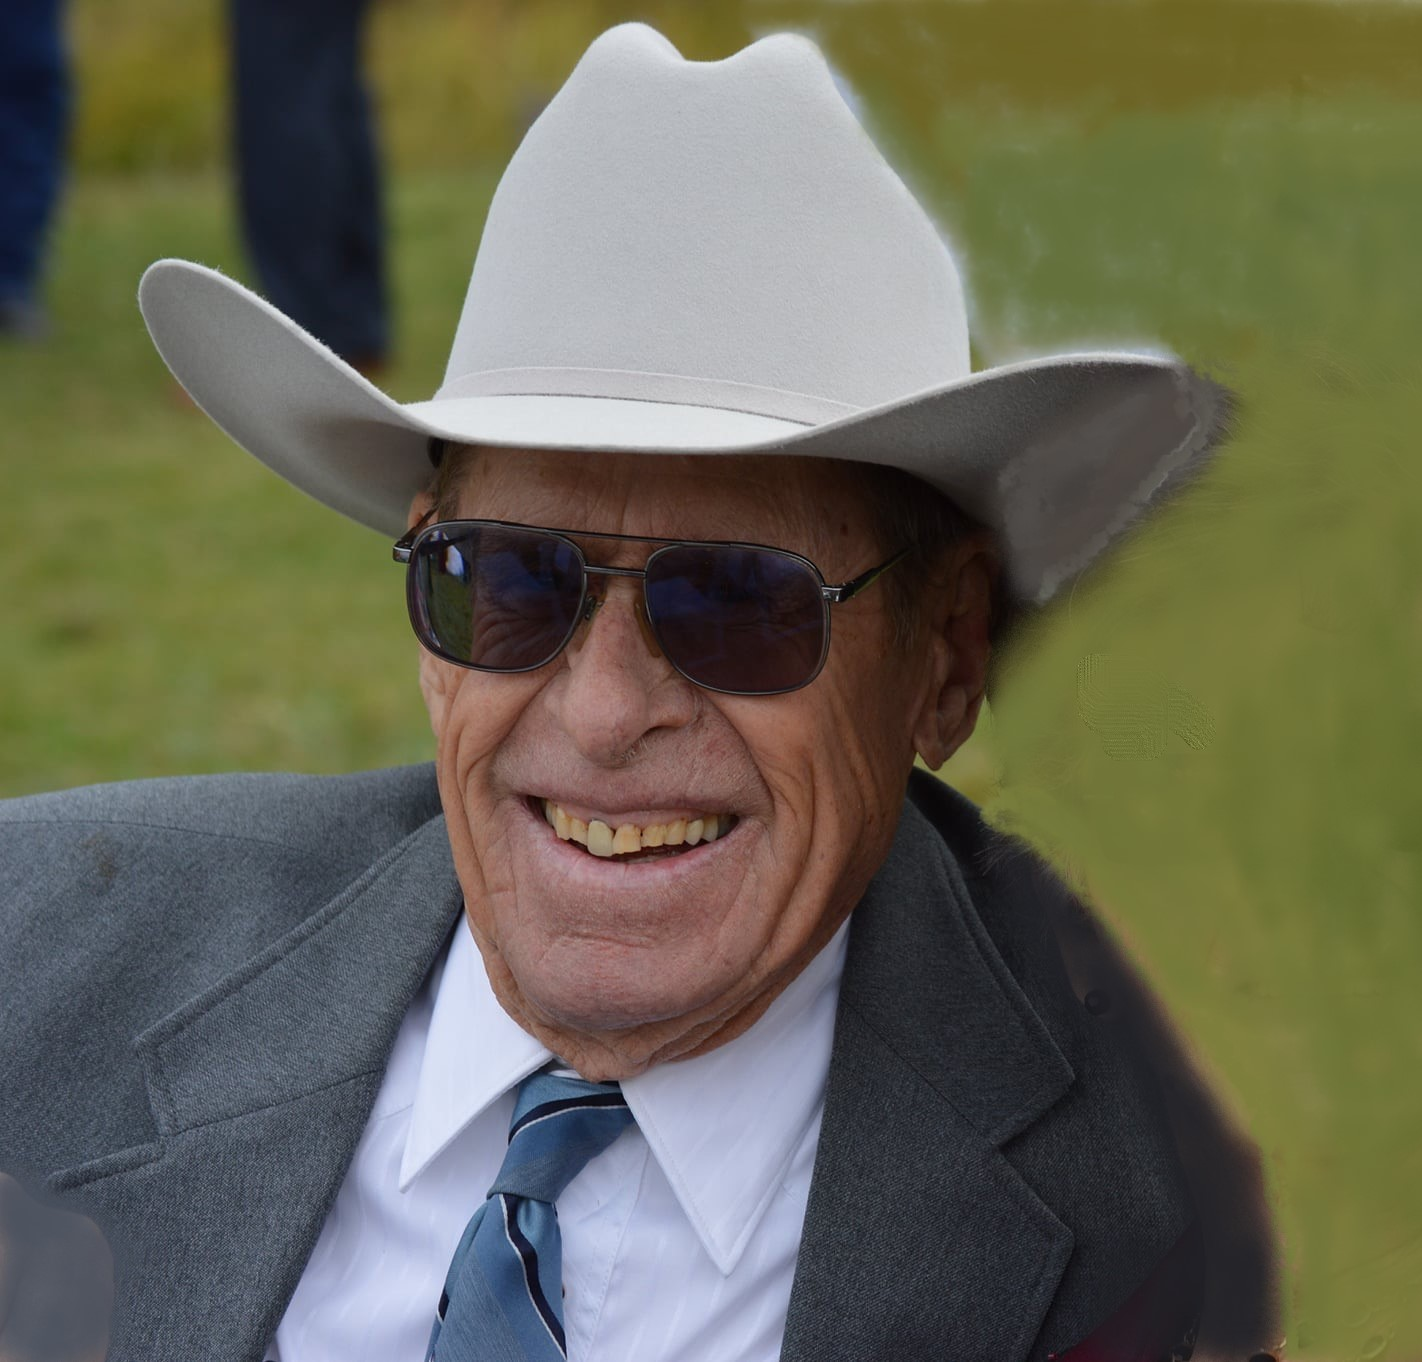 Funeral Services for John Furrow, age 78